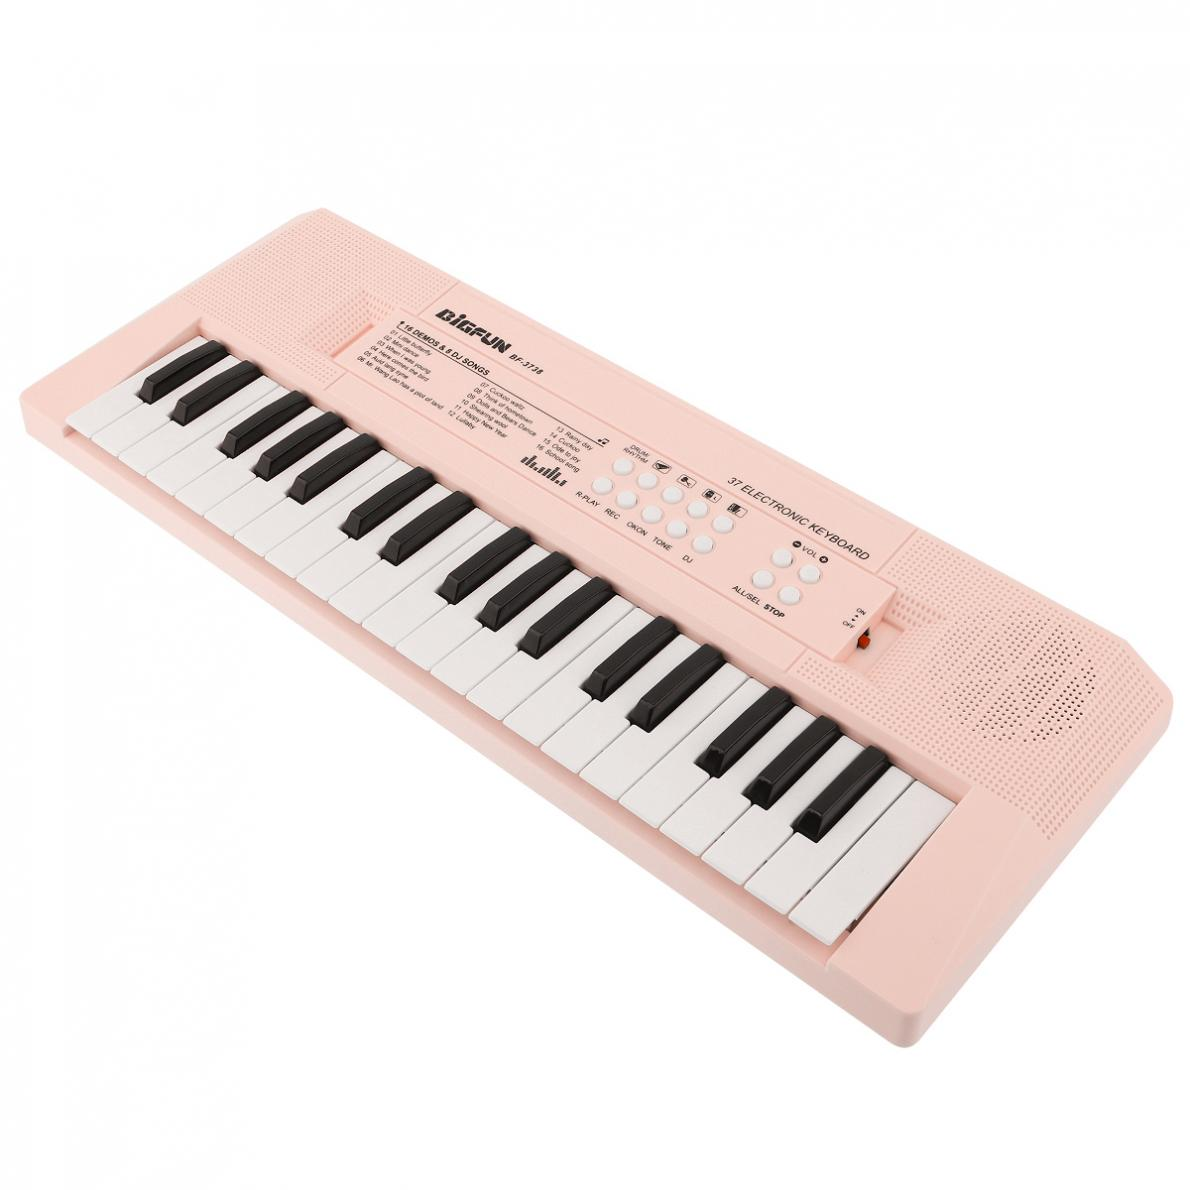 37 Keys Electronic Keyboard Piano Digital Music Key Board Children Gift Musical Enlightenment Blue and Pink Optional enlarge